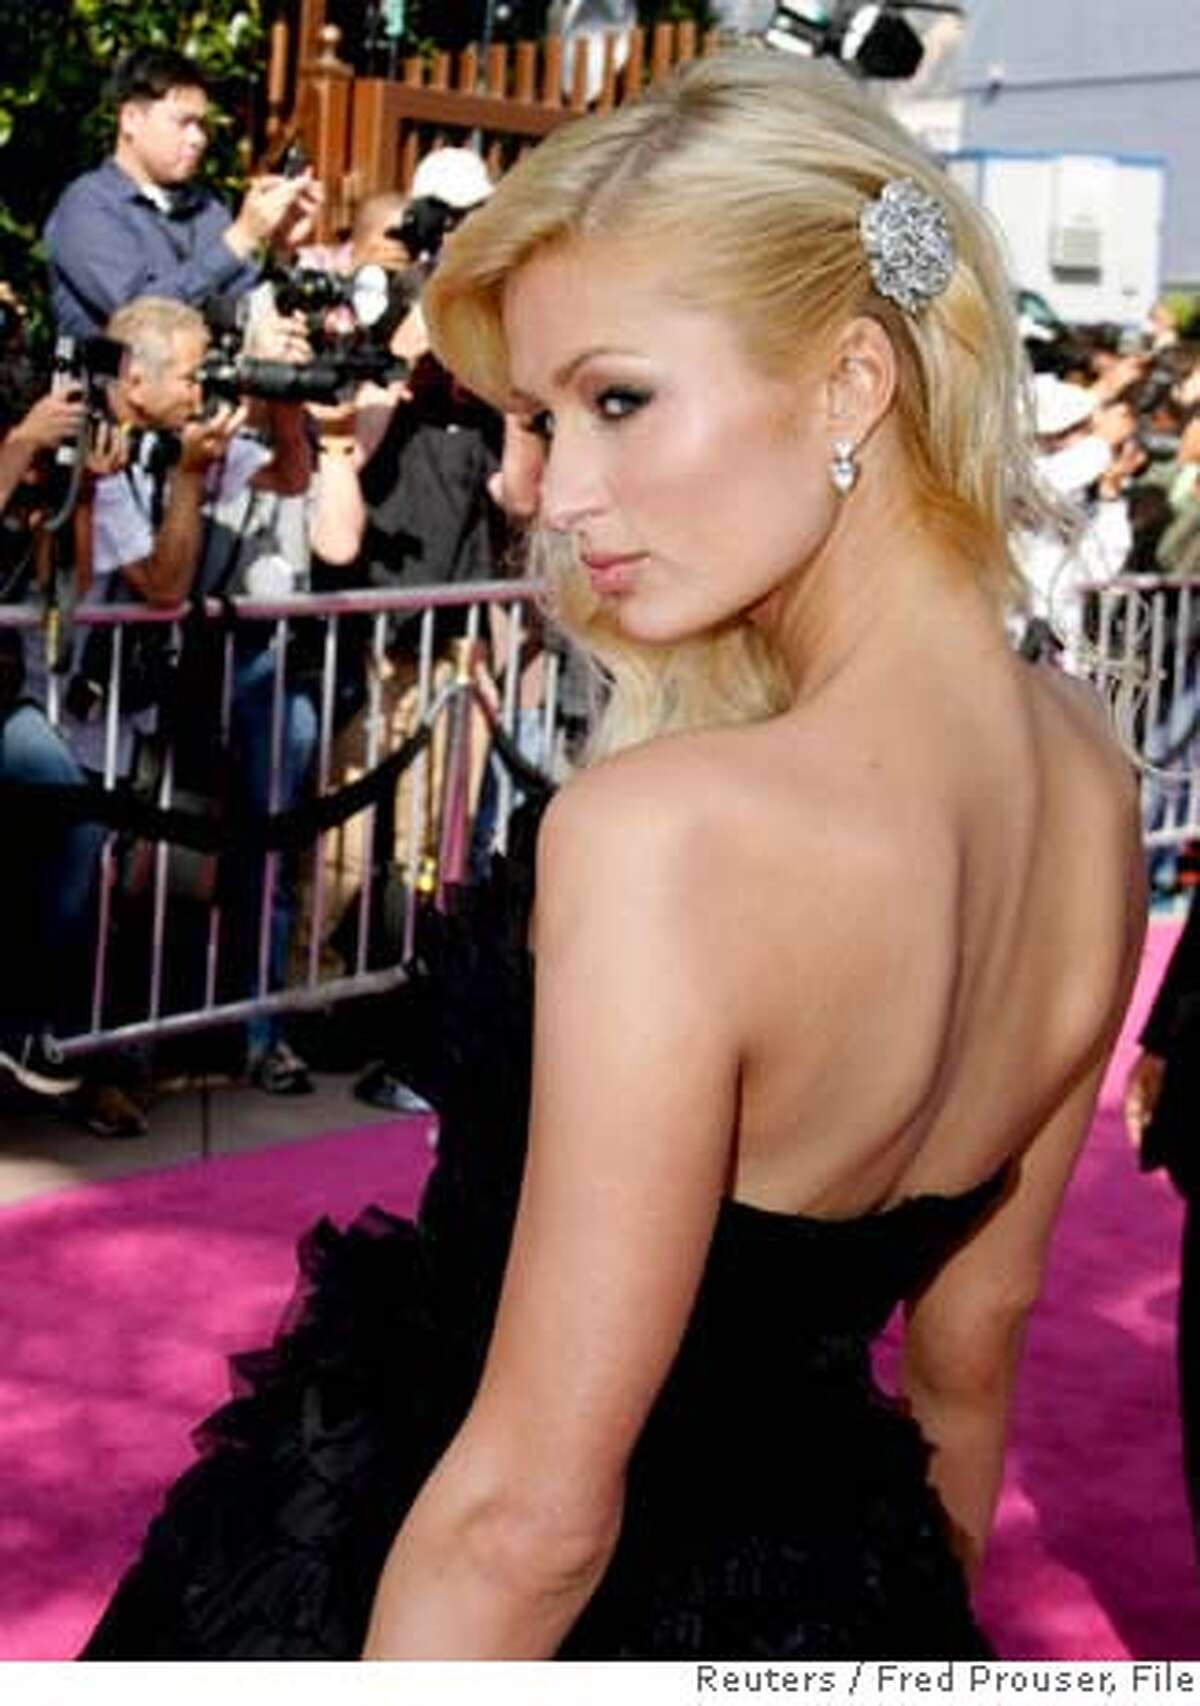 Paris Hilton arrives at the 2007 MTV Movie Awards in Los Angeles, California in this June 3, 2007 file photo. Hilton has been released after serving three days of a 23-day jail sentence in Los Angeles, a celebrity news Web site reported on June 7, 2007. REUTERS/Fred Prouser/Files (UNITED STATES) 0